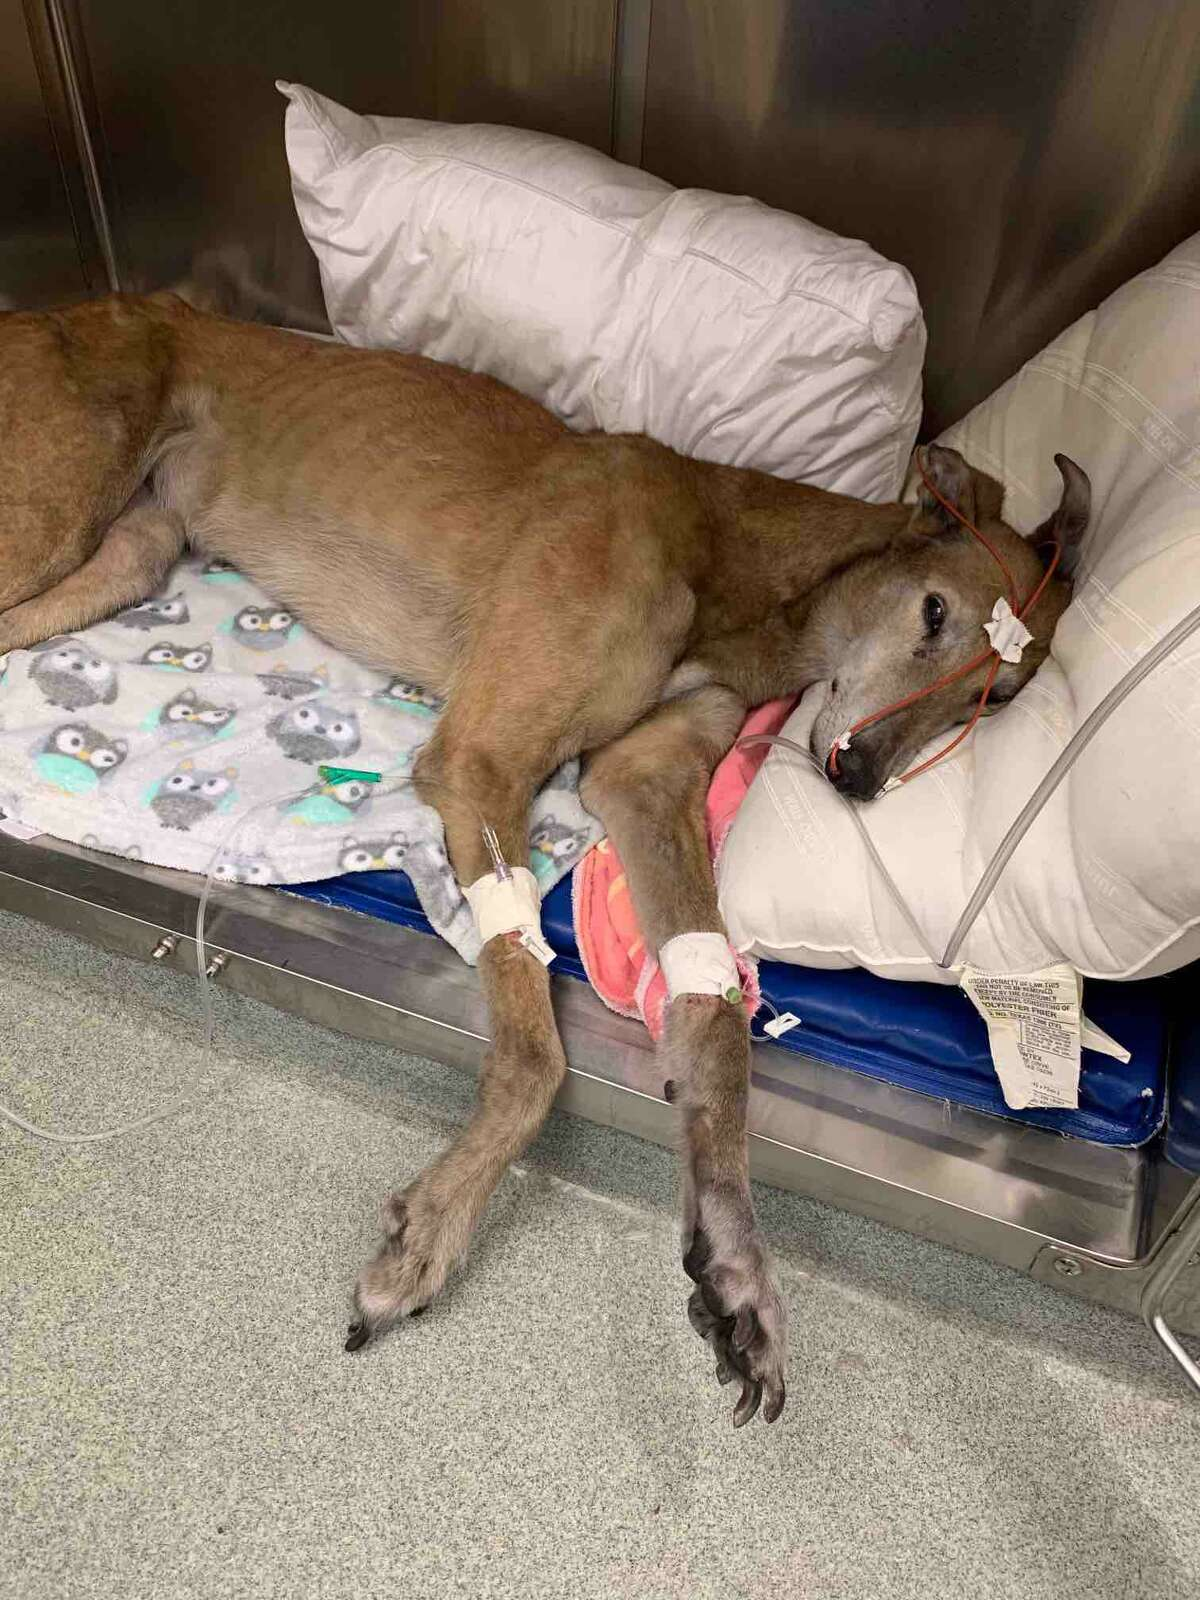 Several dogs were rescued from a fire in a Ridgefield Home on May 15, 2021 and are being given medical attention.